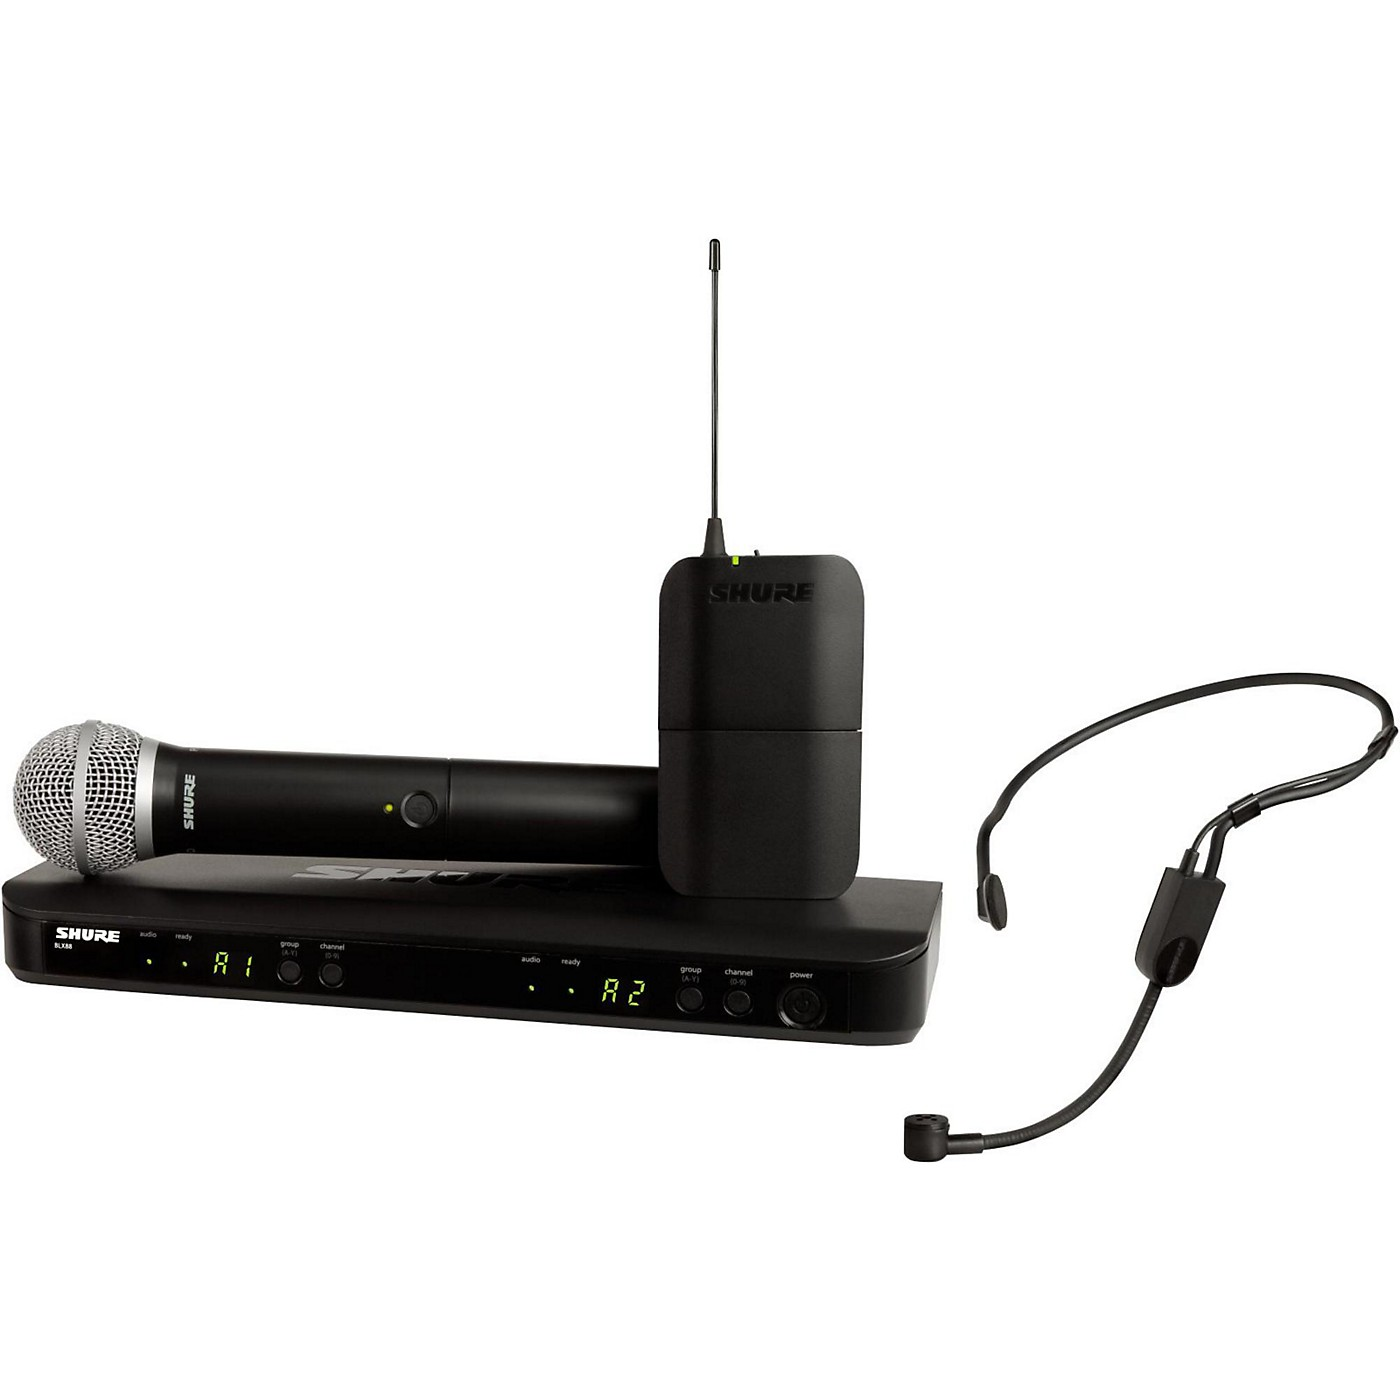 Shure BLX1288 Combo System with PGA31 Headset microphone and PG58 handheld microphone thumbnail